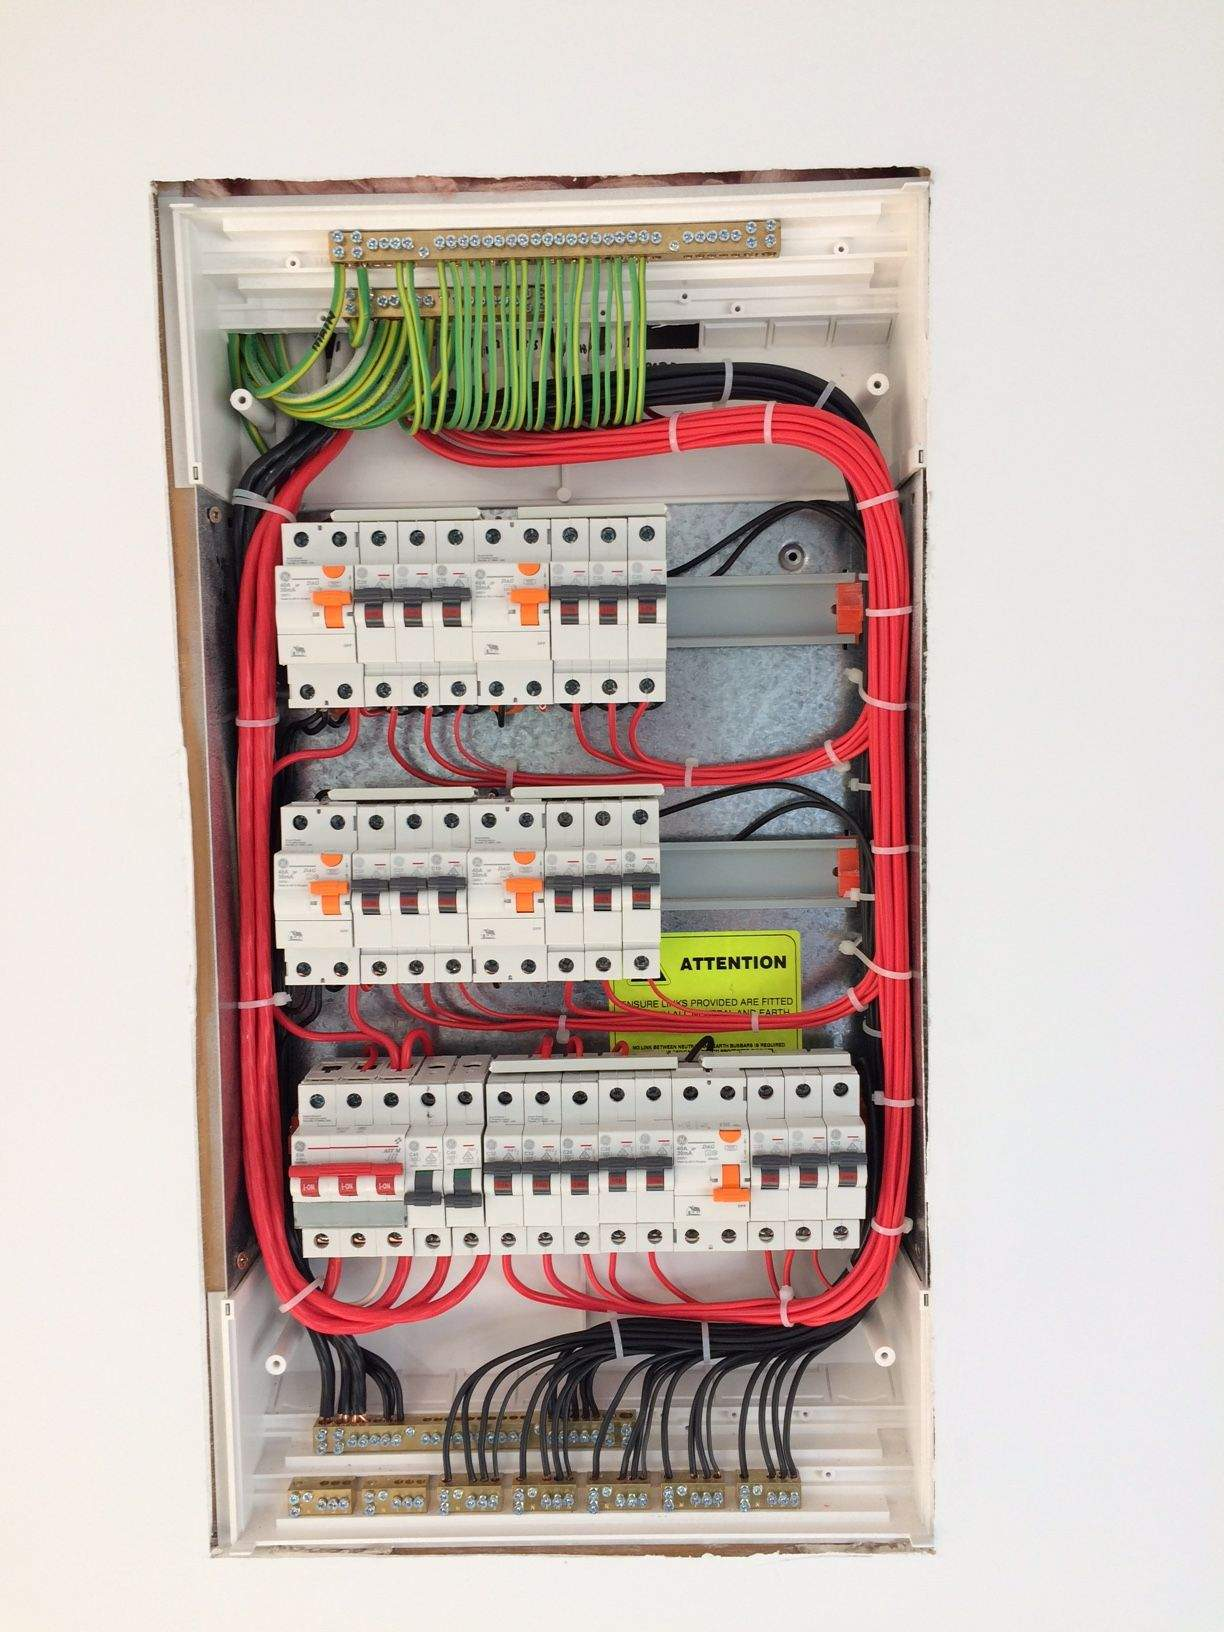 Wiring A Switchboard Nz Bookmark About Diagram Domestic Online Rh 1 17 19 Tokyo Running Sushi De Home